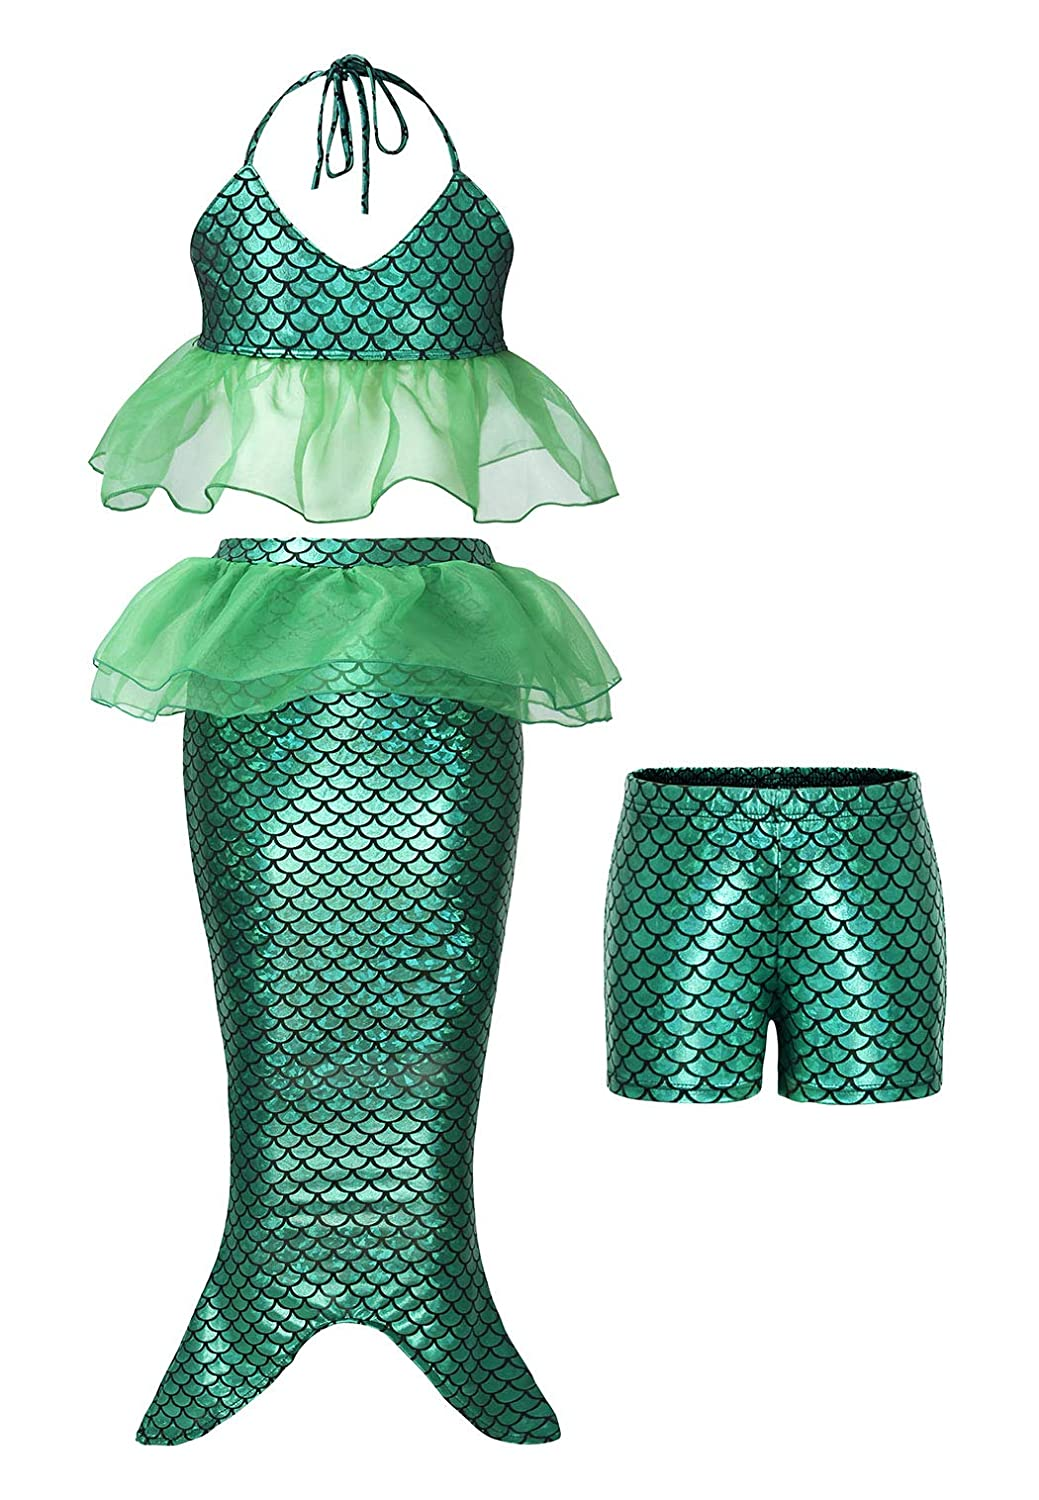 HenzWorld Little Mermaid Ariel Costume Dress Swimsuit Girls Sequin Princess Birthday Party Cosplay Clothes